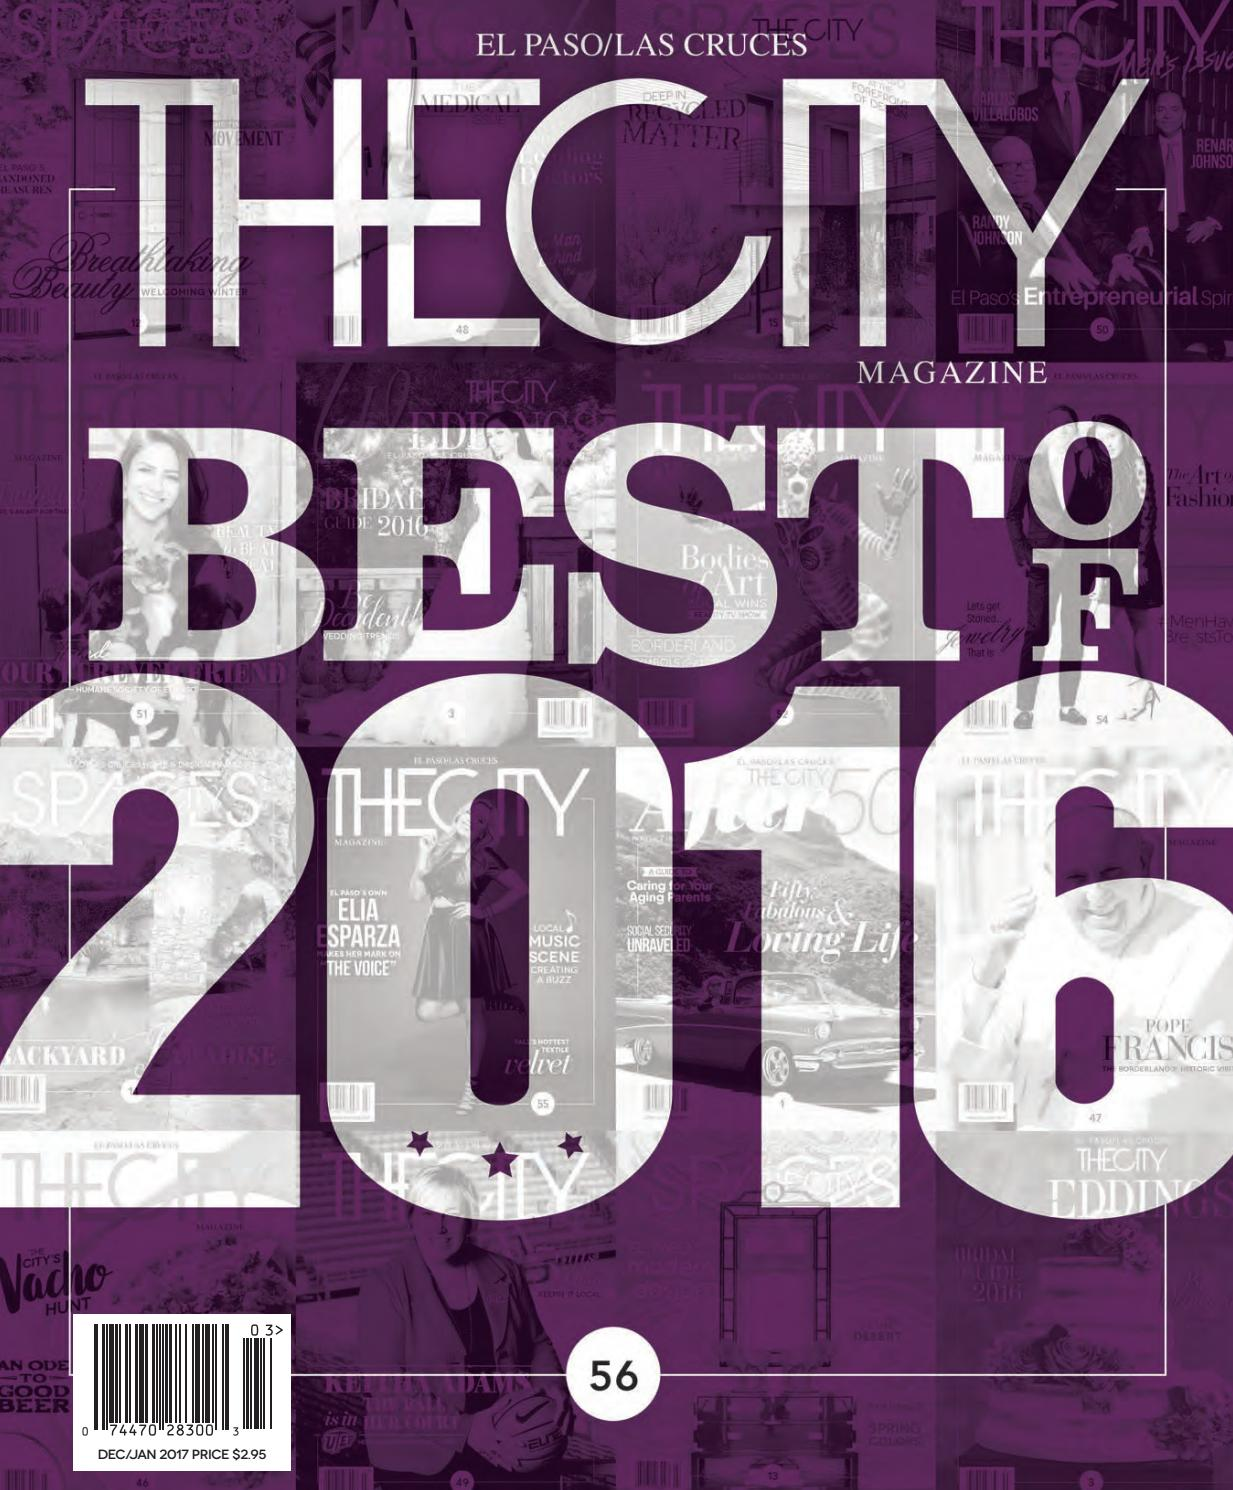 The city magazine el pasolas cruces botc 2016 by the city the city magazine el pasolas cruces botc 2016 by the city magazine el pasolas cruces issuu aiddatafo Gallery